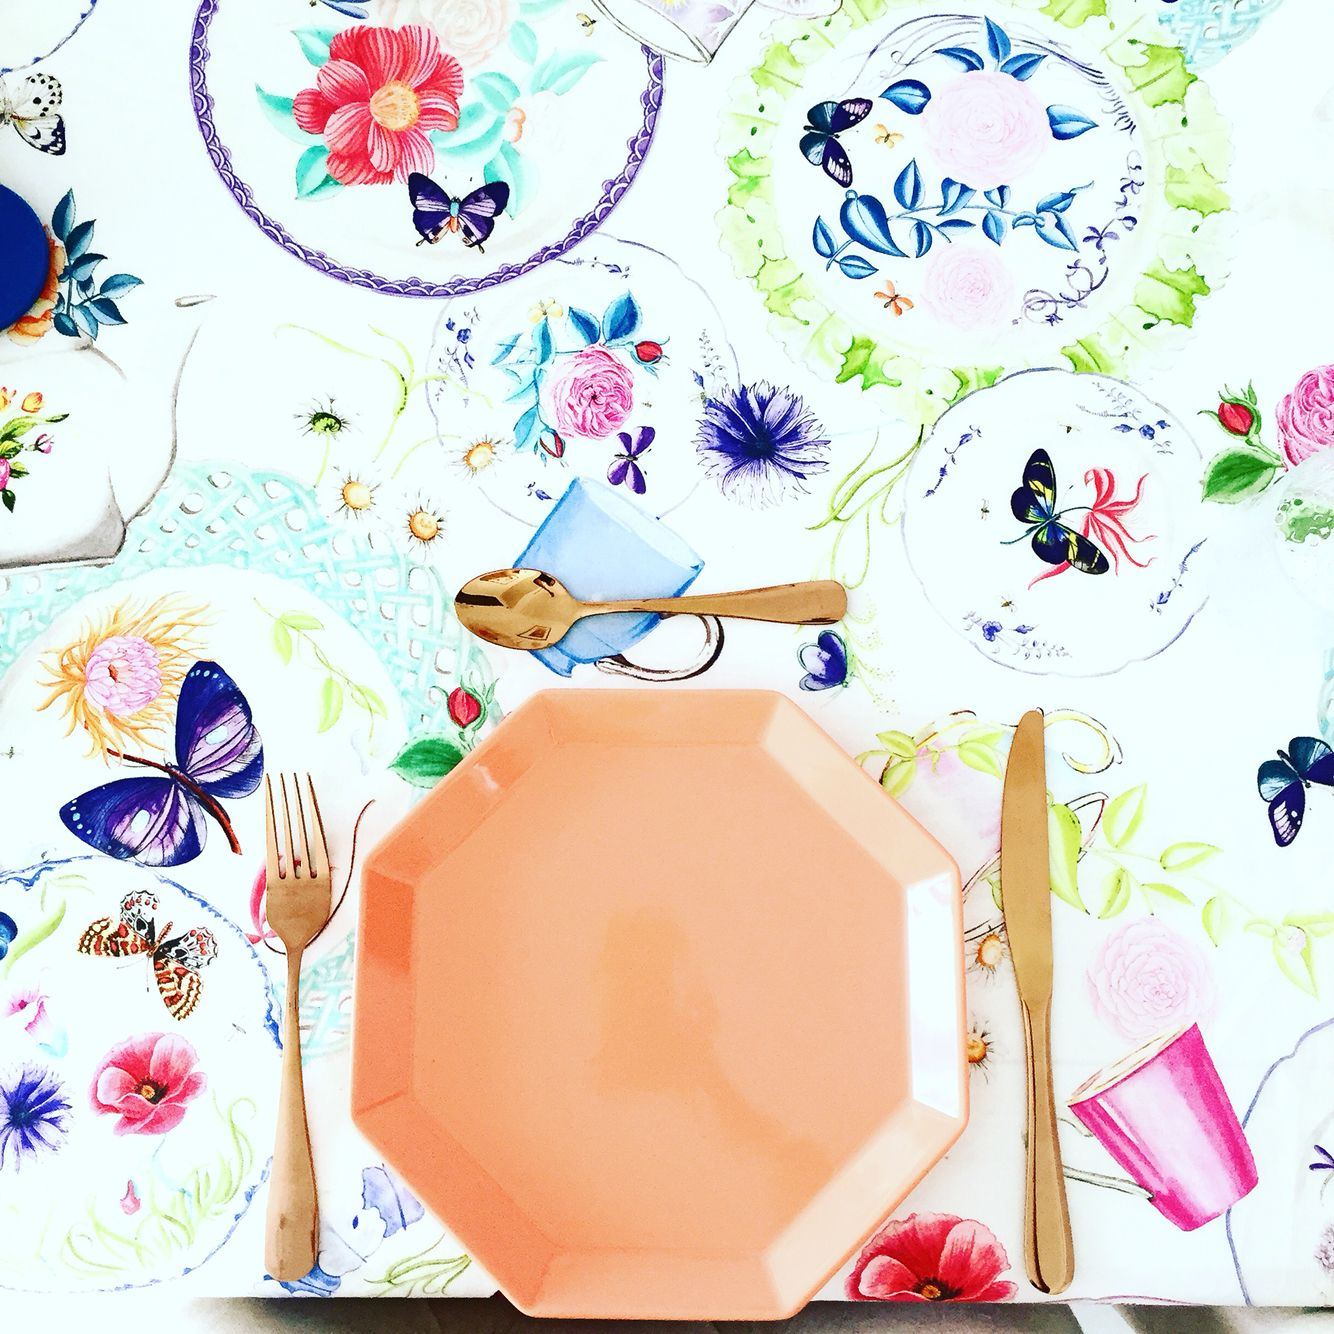 Sunday Brunch Table setting! Keeping it bright and colourful 🌸🌼🌺